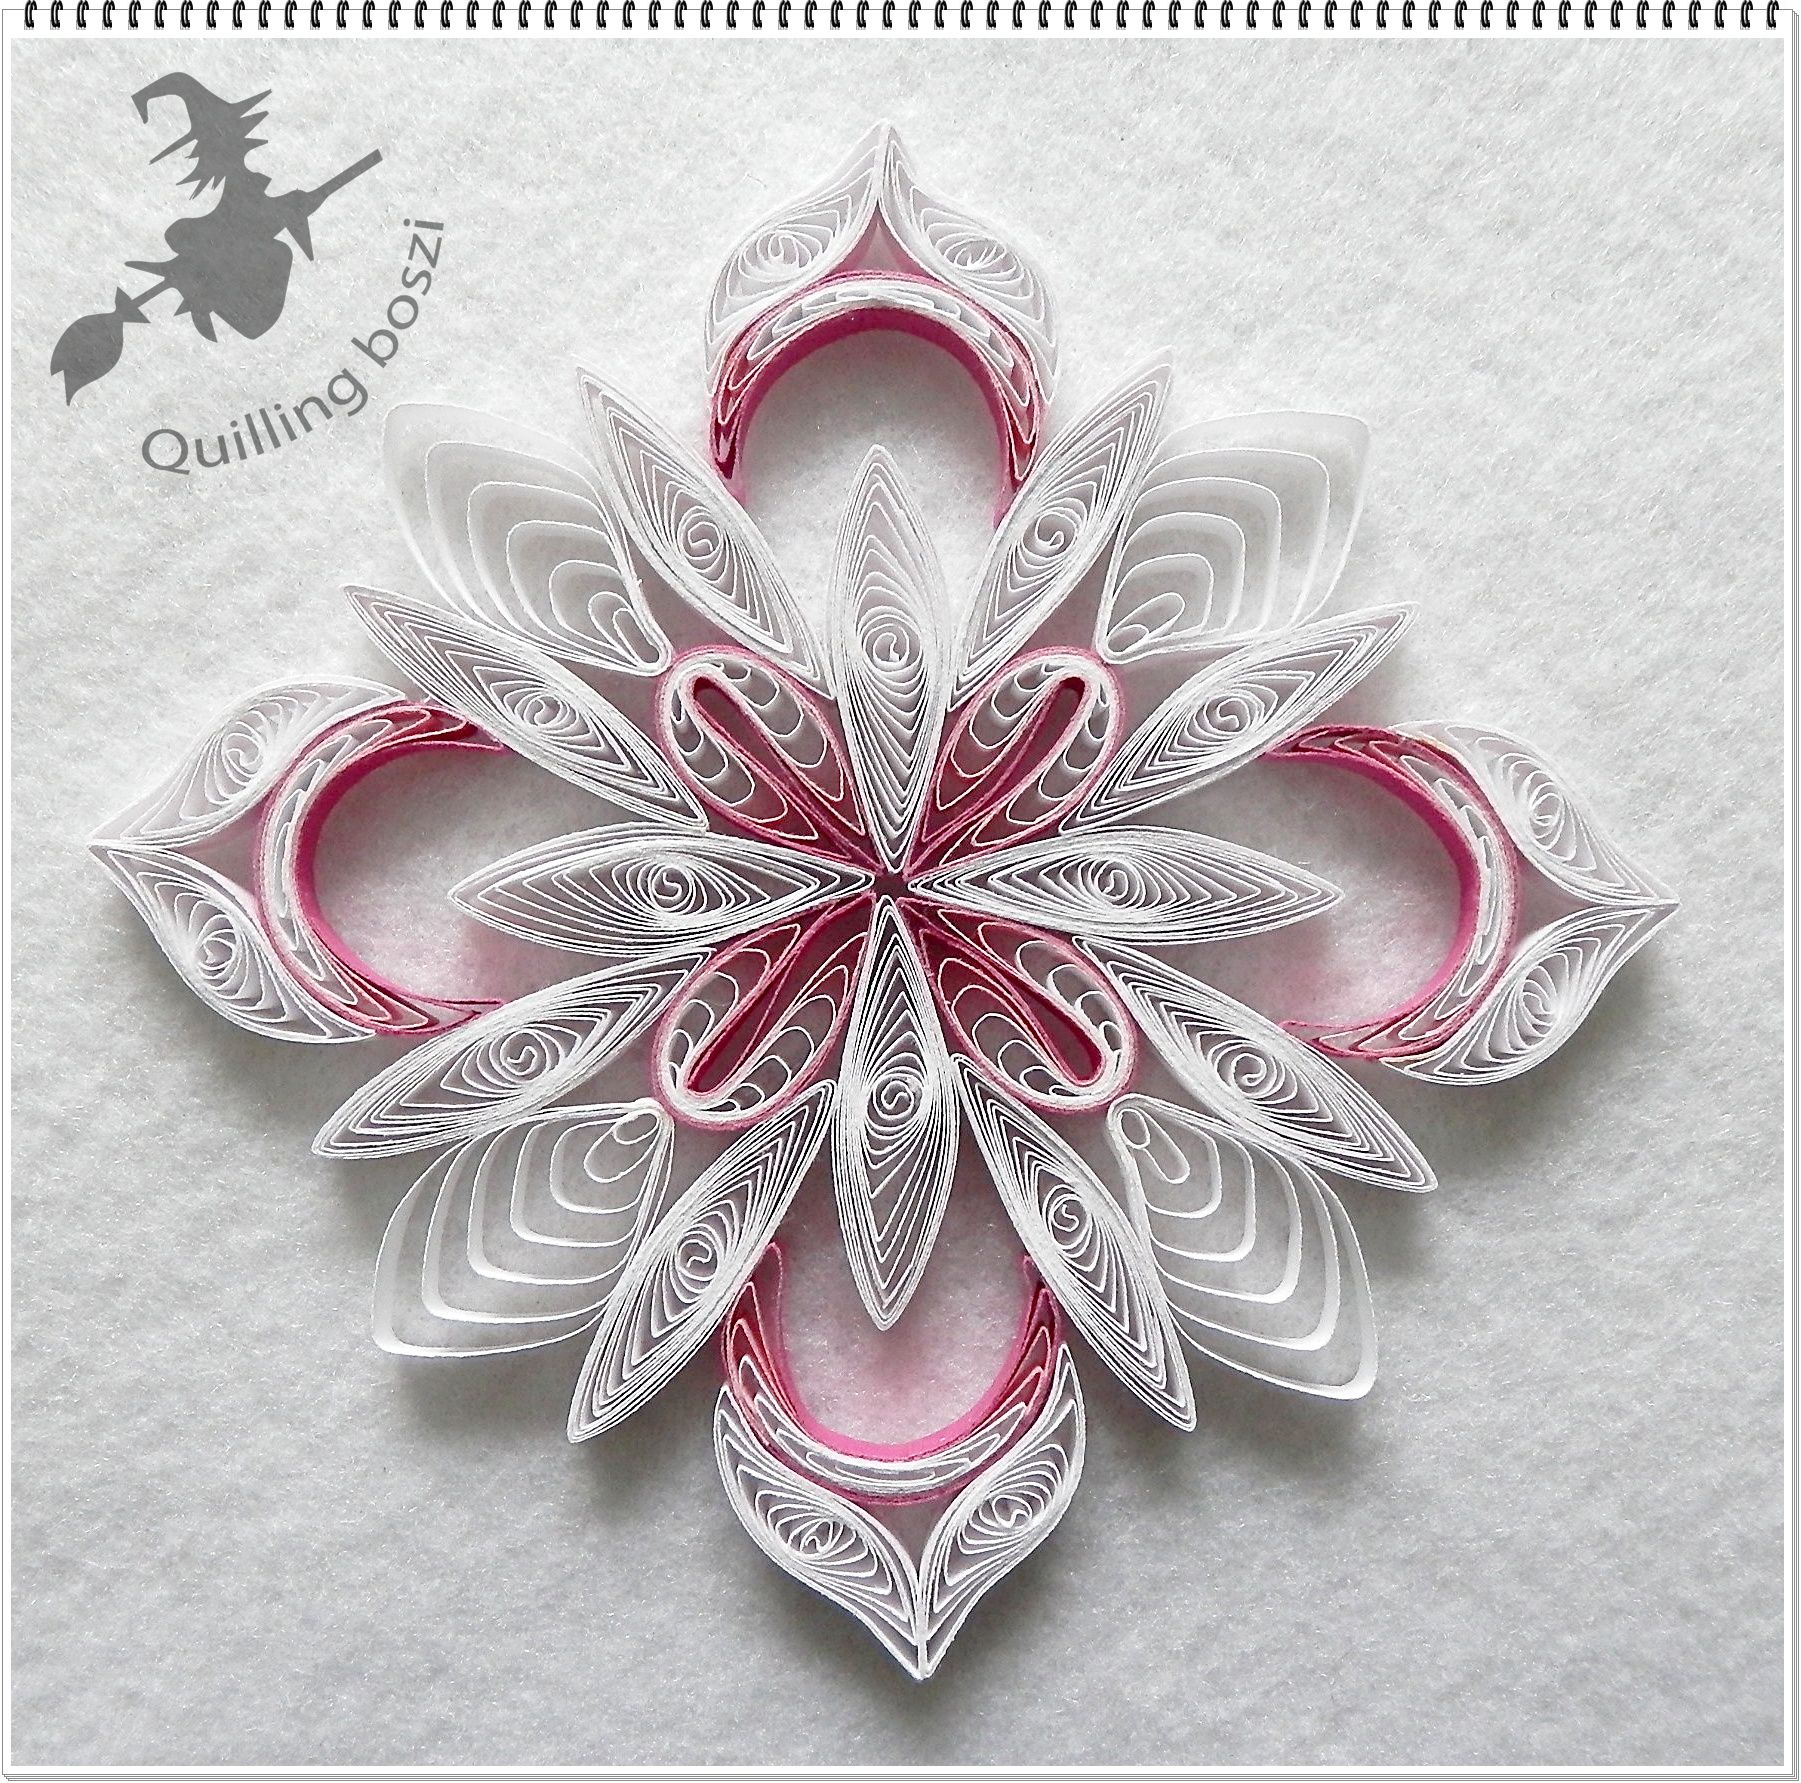 Pin By Treena Ackerman On Quilling Snowflakes Paper border=